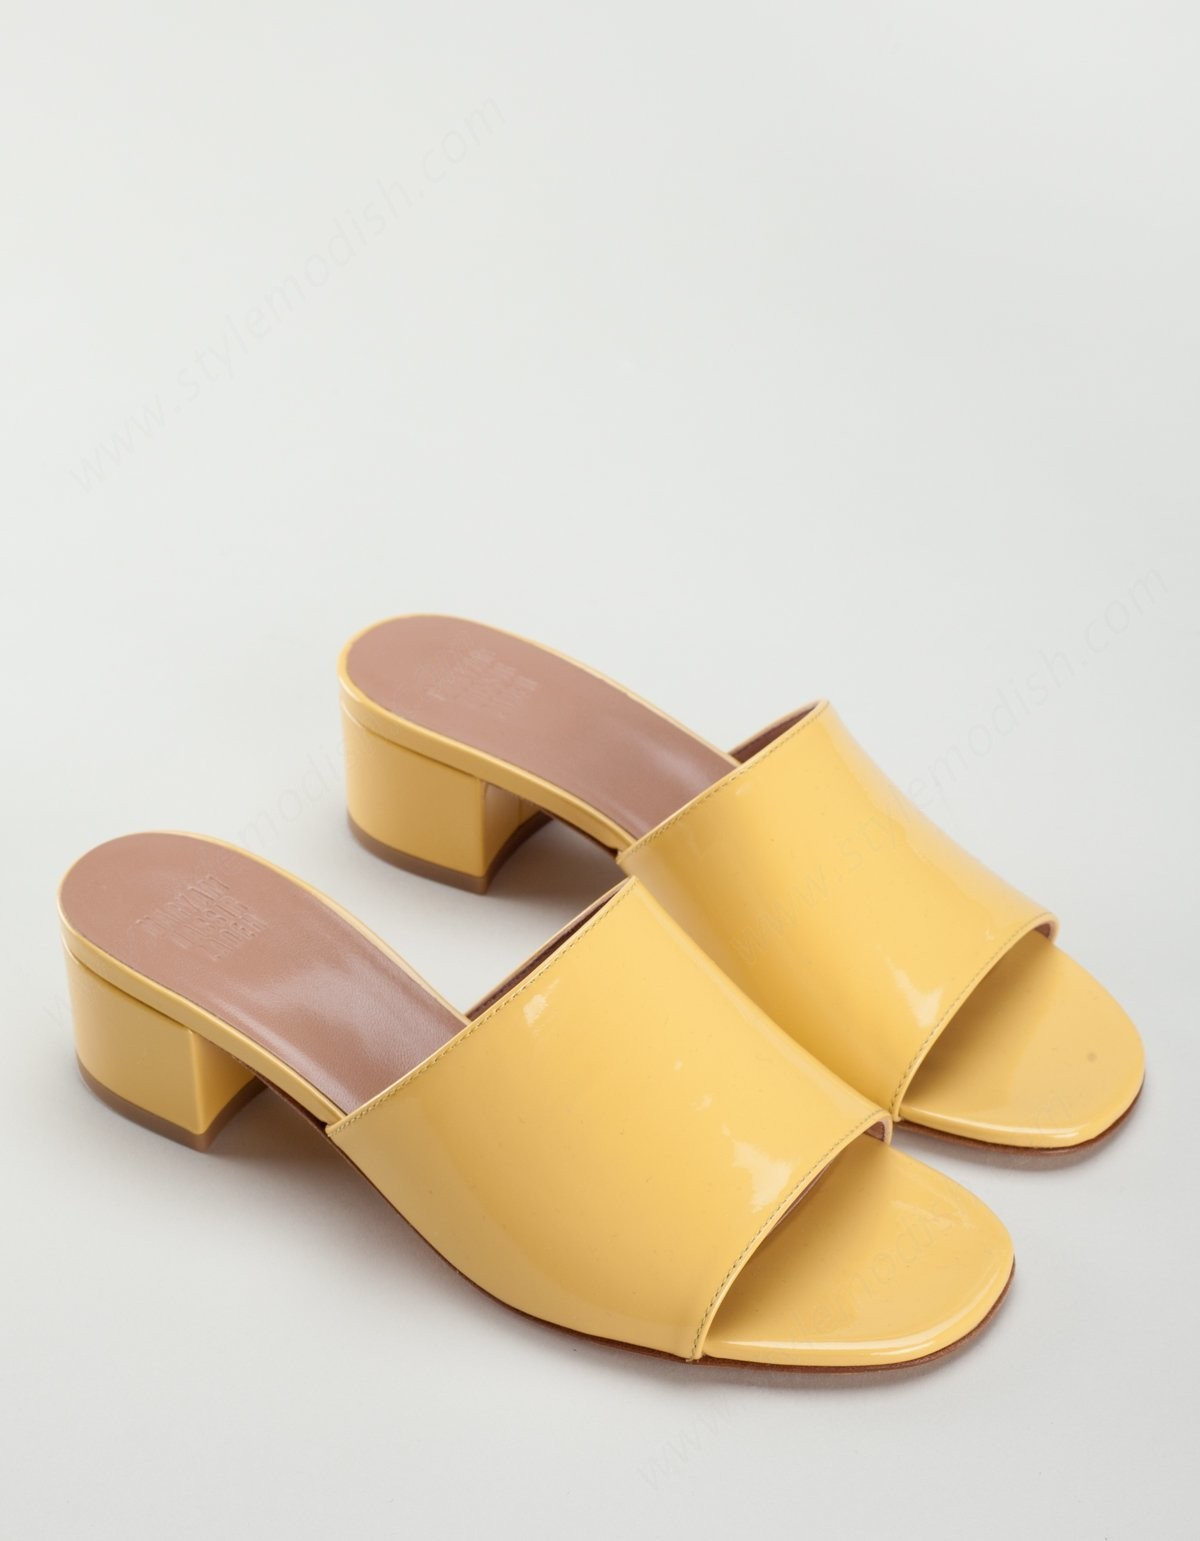 Woman's Maryam Nassir Zadeh Sophie Slide Amber Patent - -0